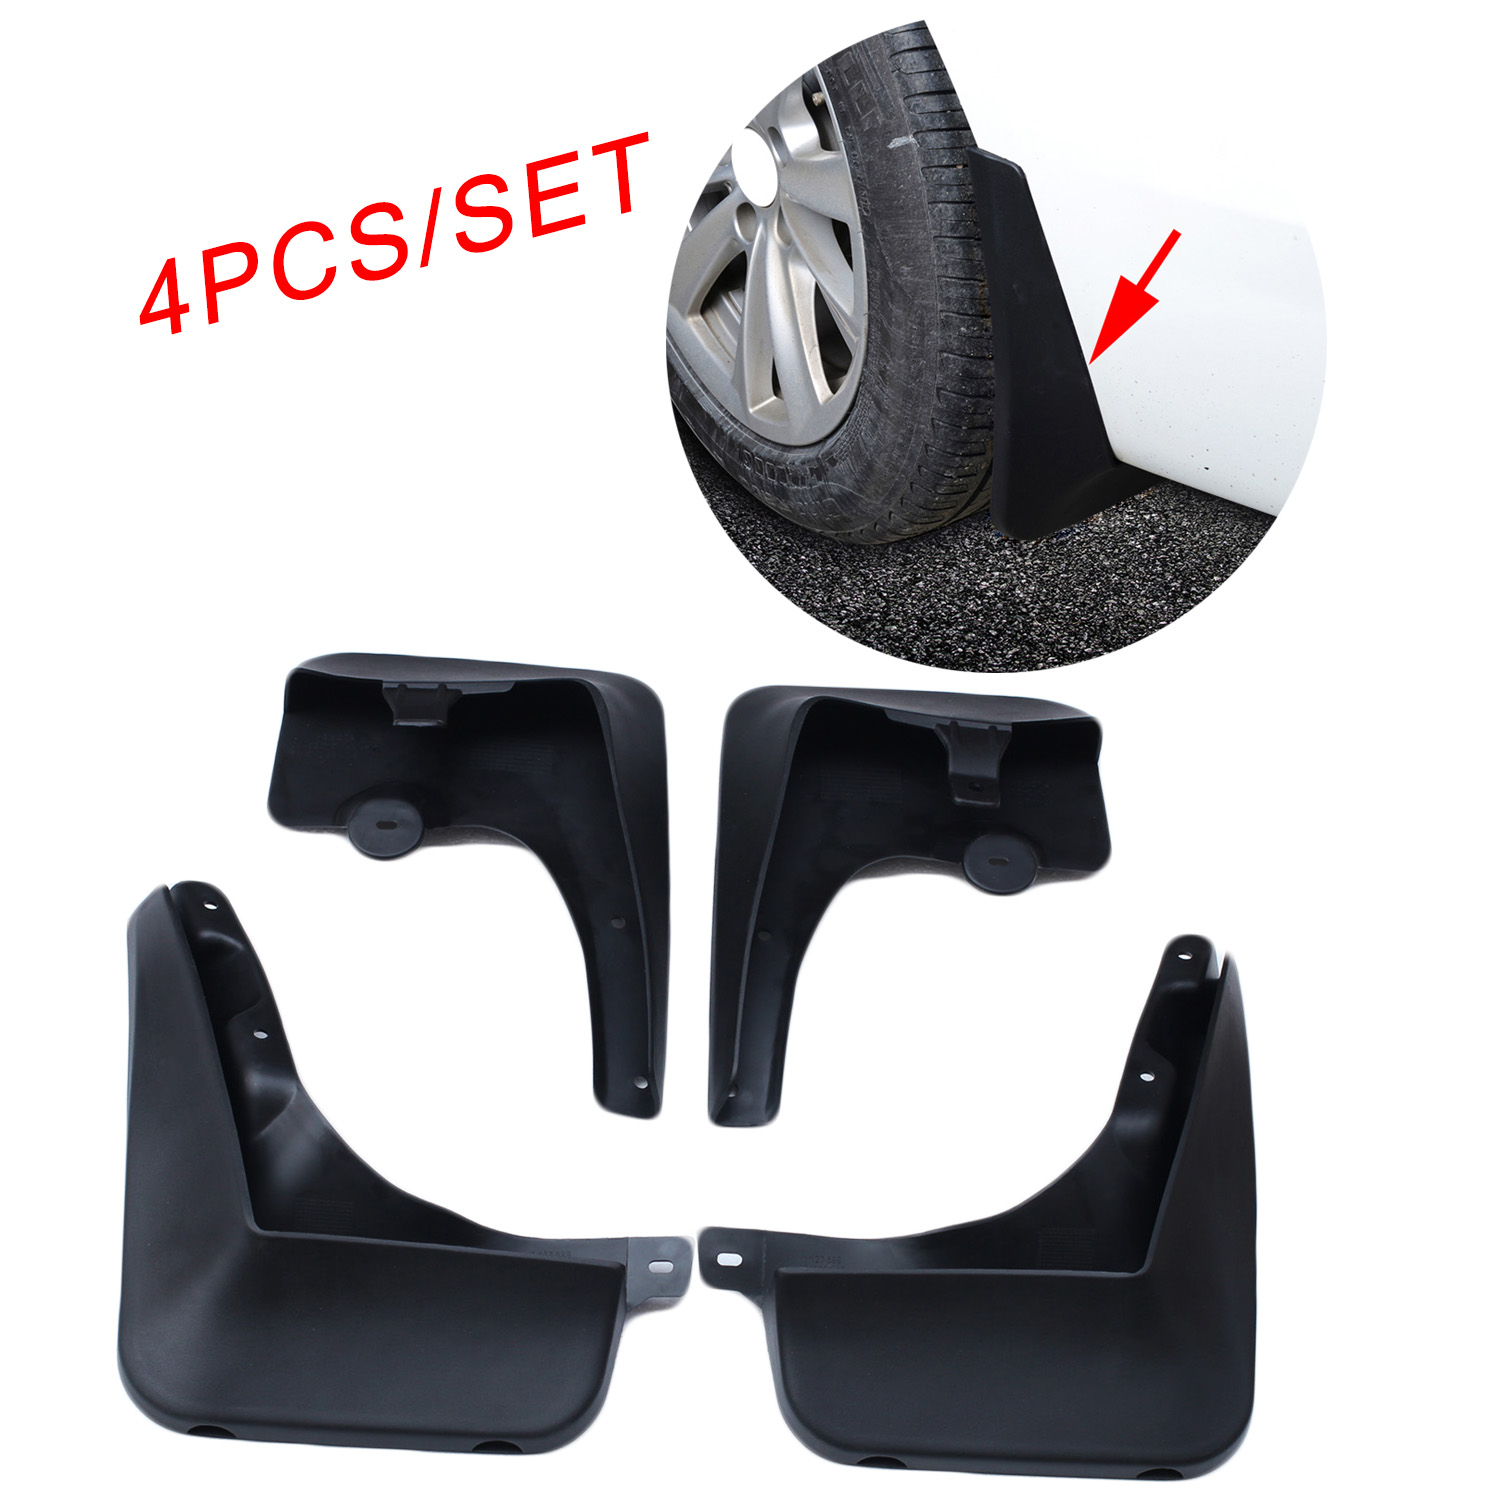 Fender Splash Protect Board Fit For BMW F10 2011 2014 2015 2016 Accessories Dust Dirtboard Wheel Shield Plate Cover|Mudguards| |  - title=